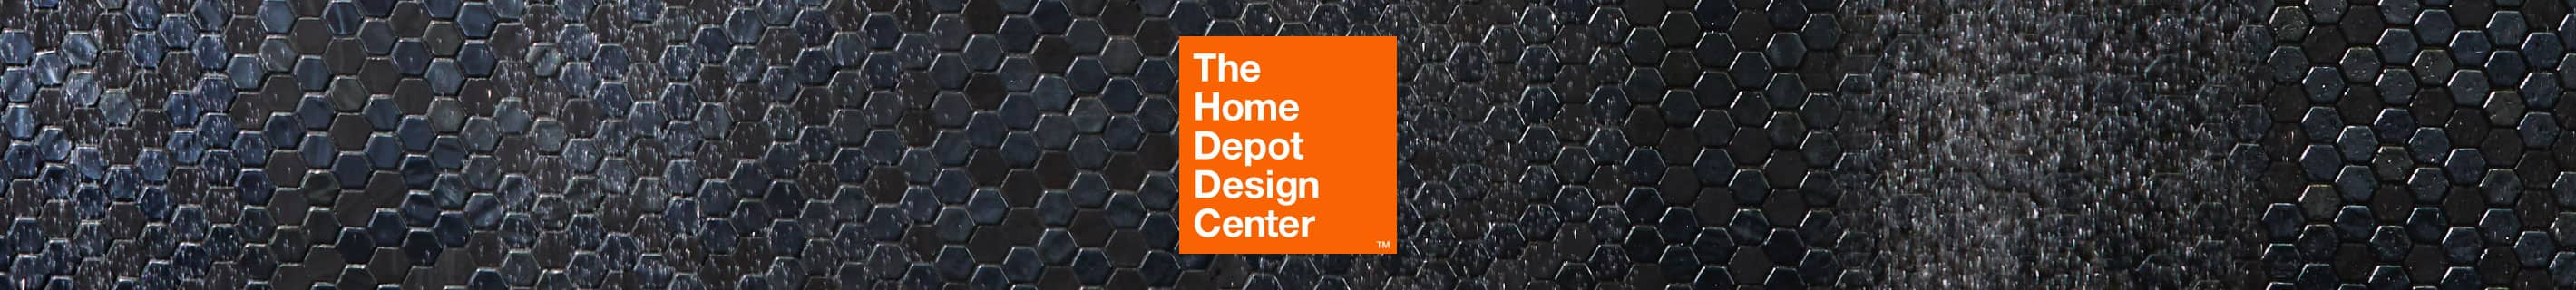 HDDC Page Footer